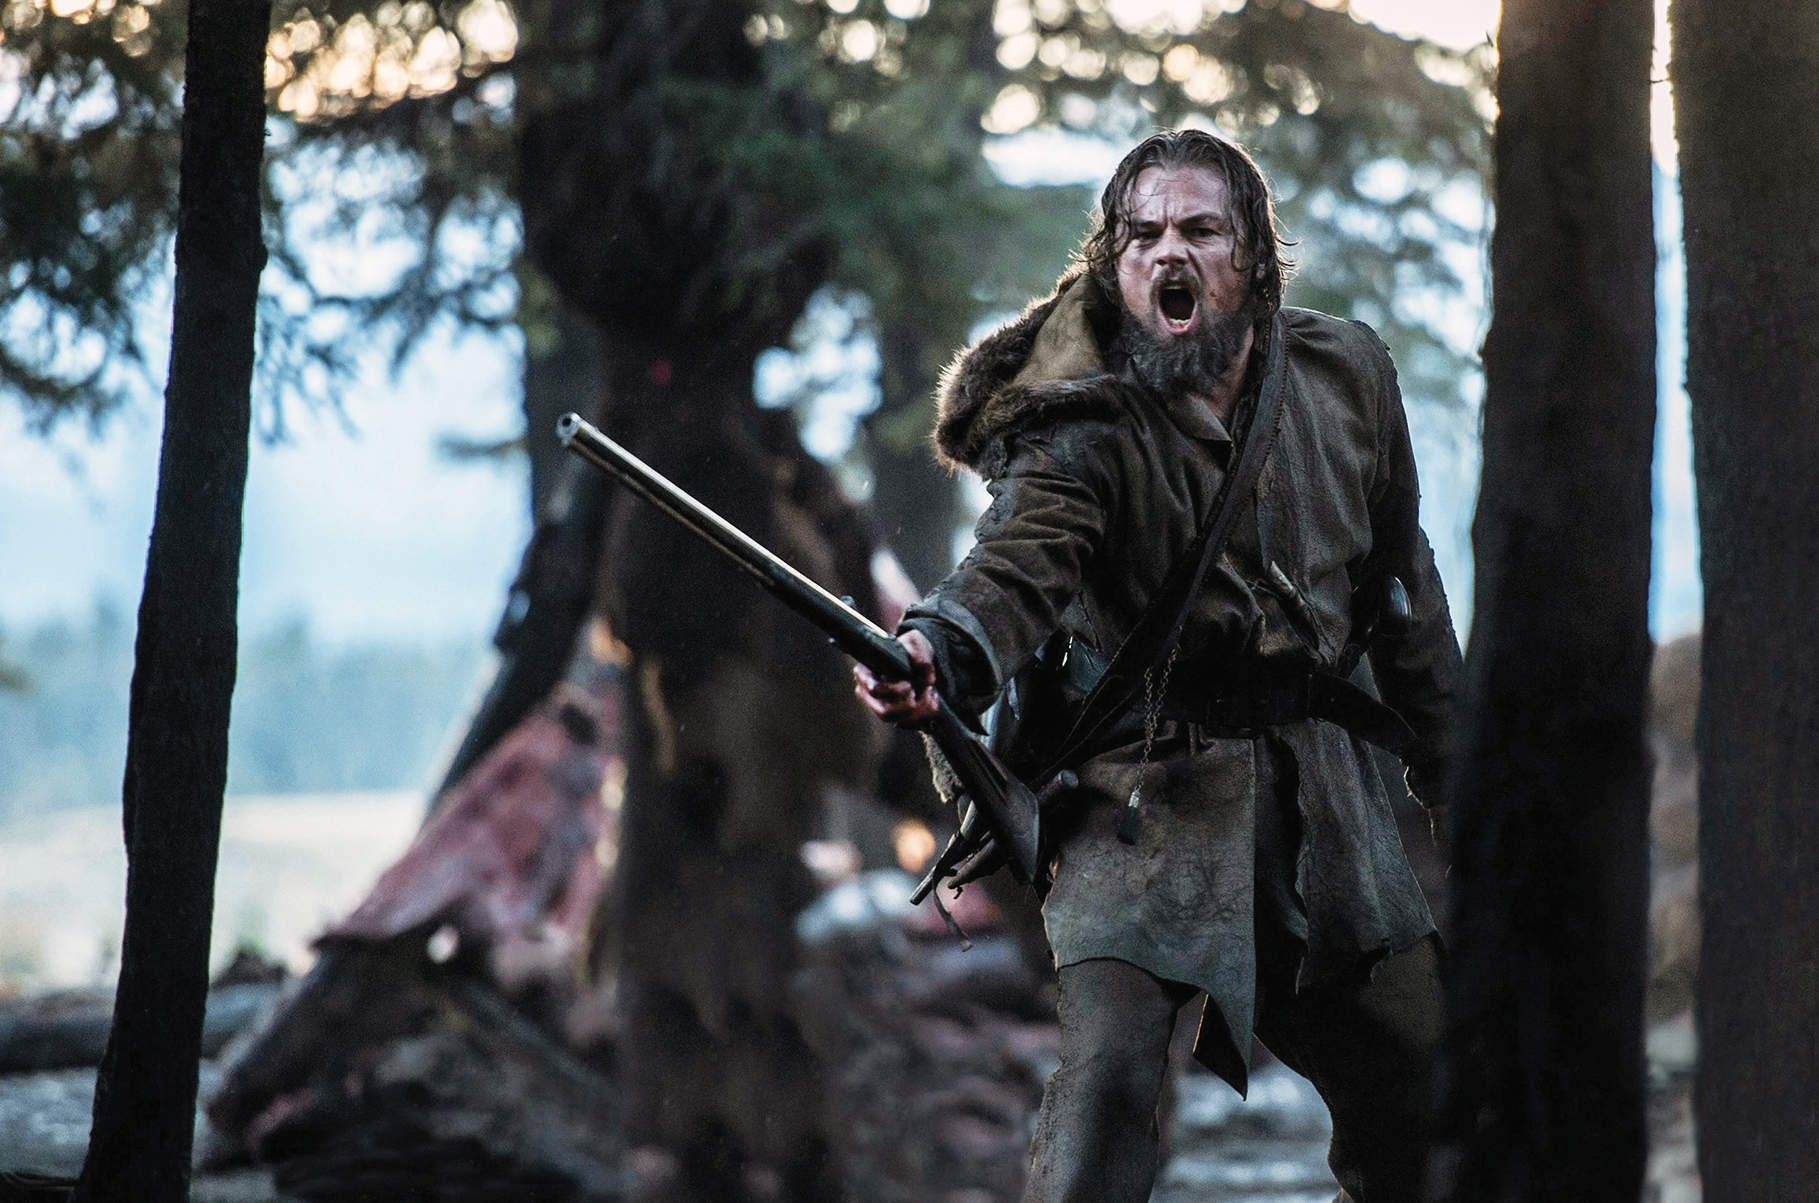 Happiness is a warm gun: on the novel that inspired The Revenant